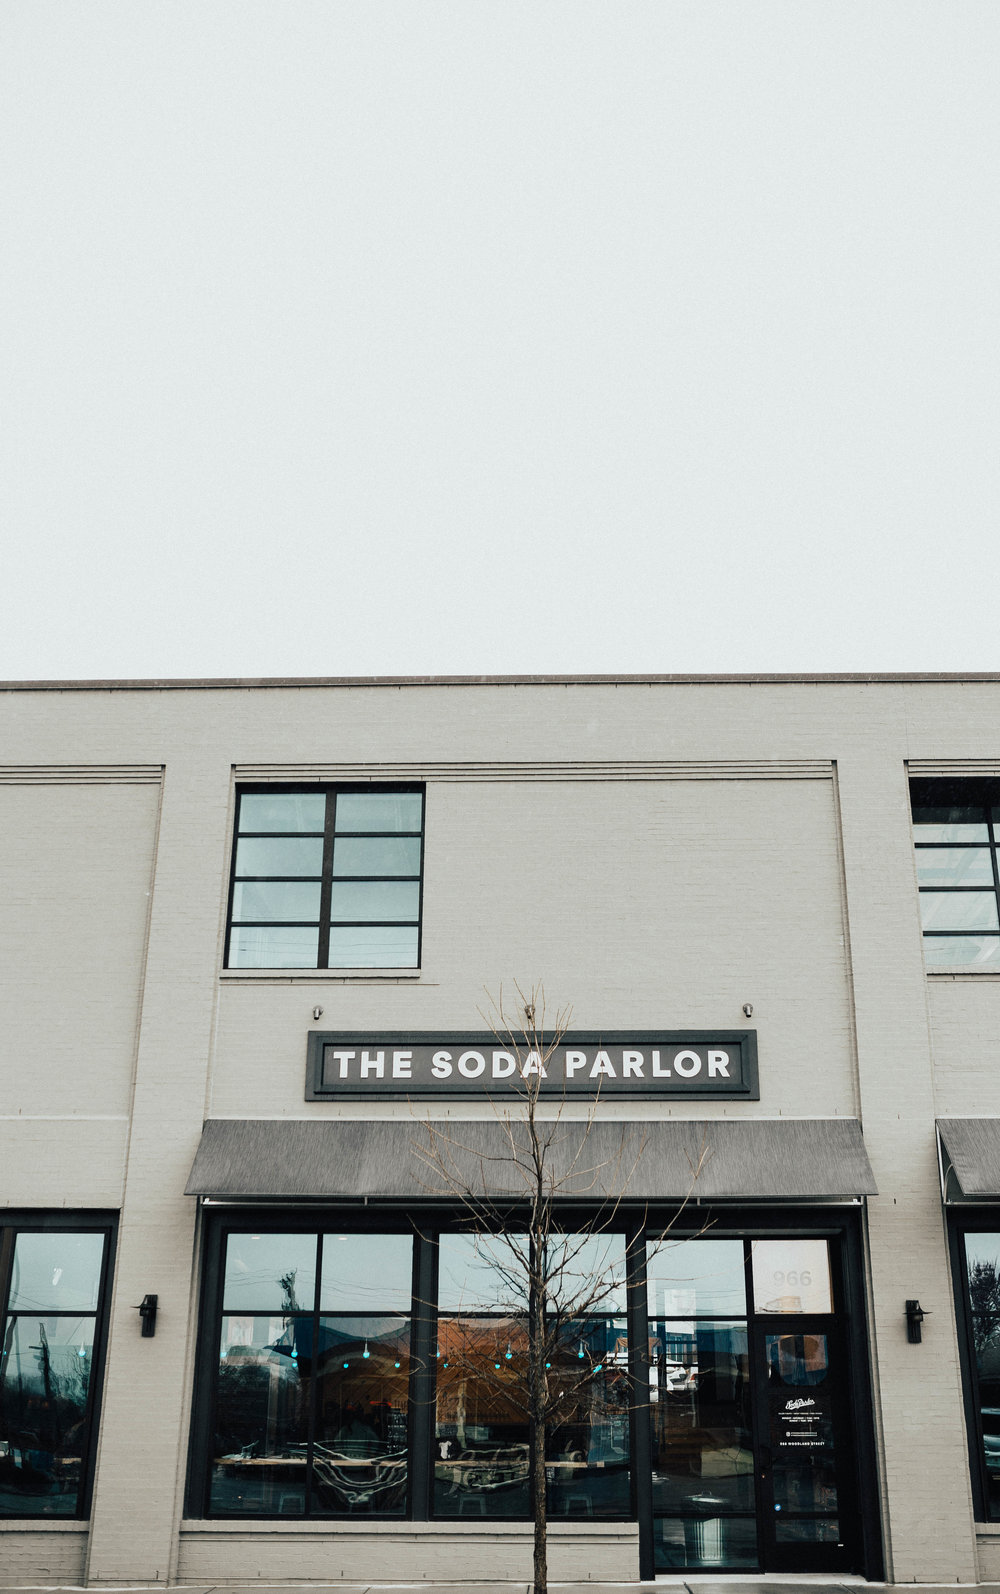 the soda parlor - bow down to greatness